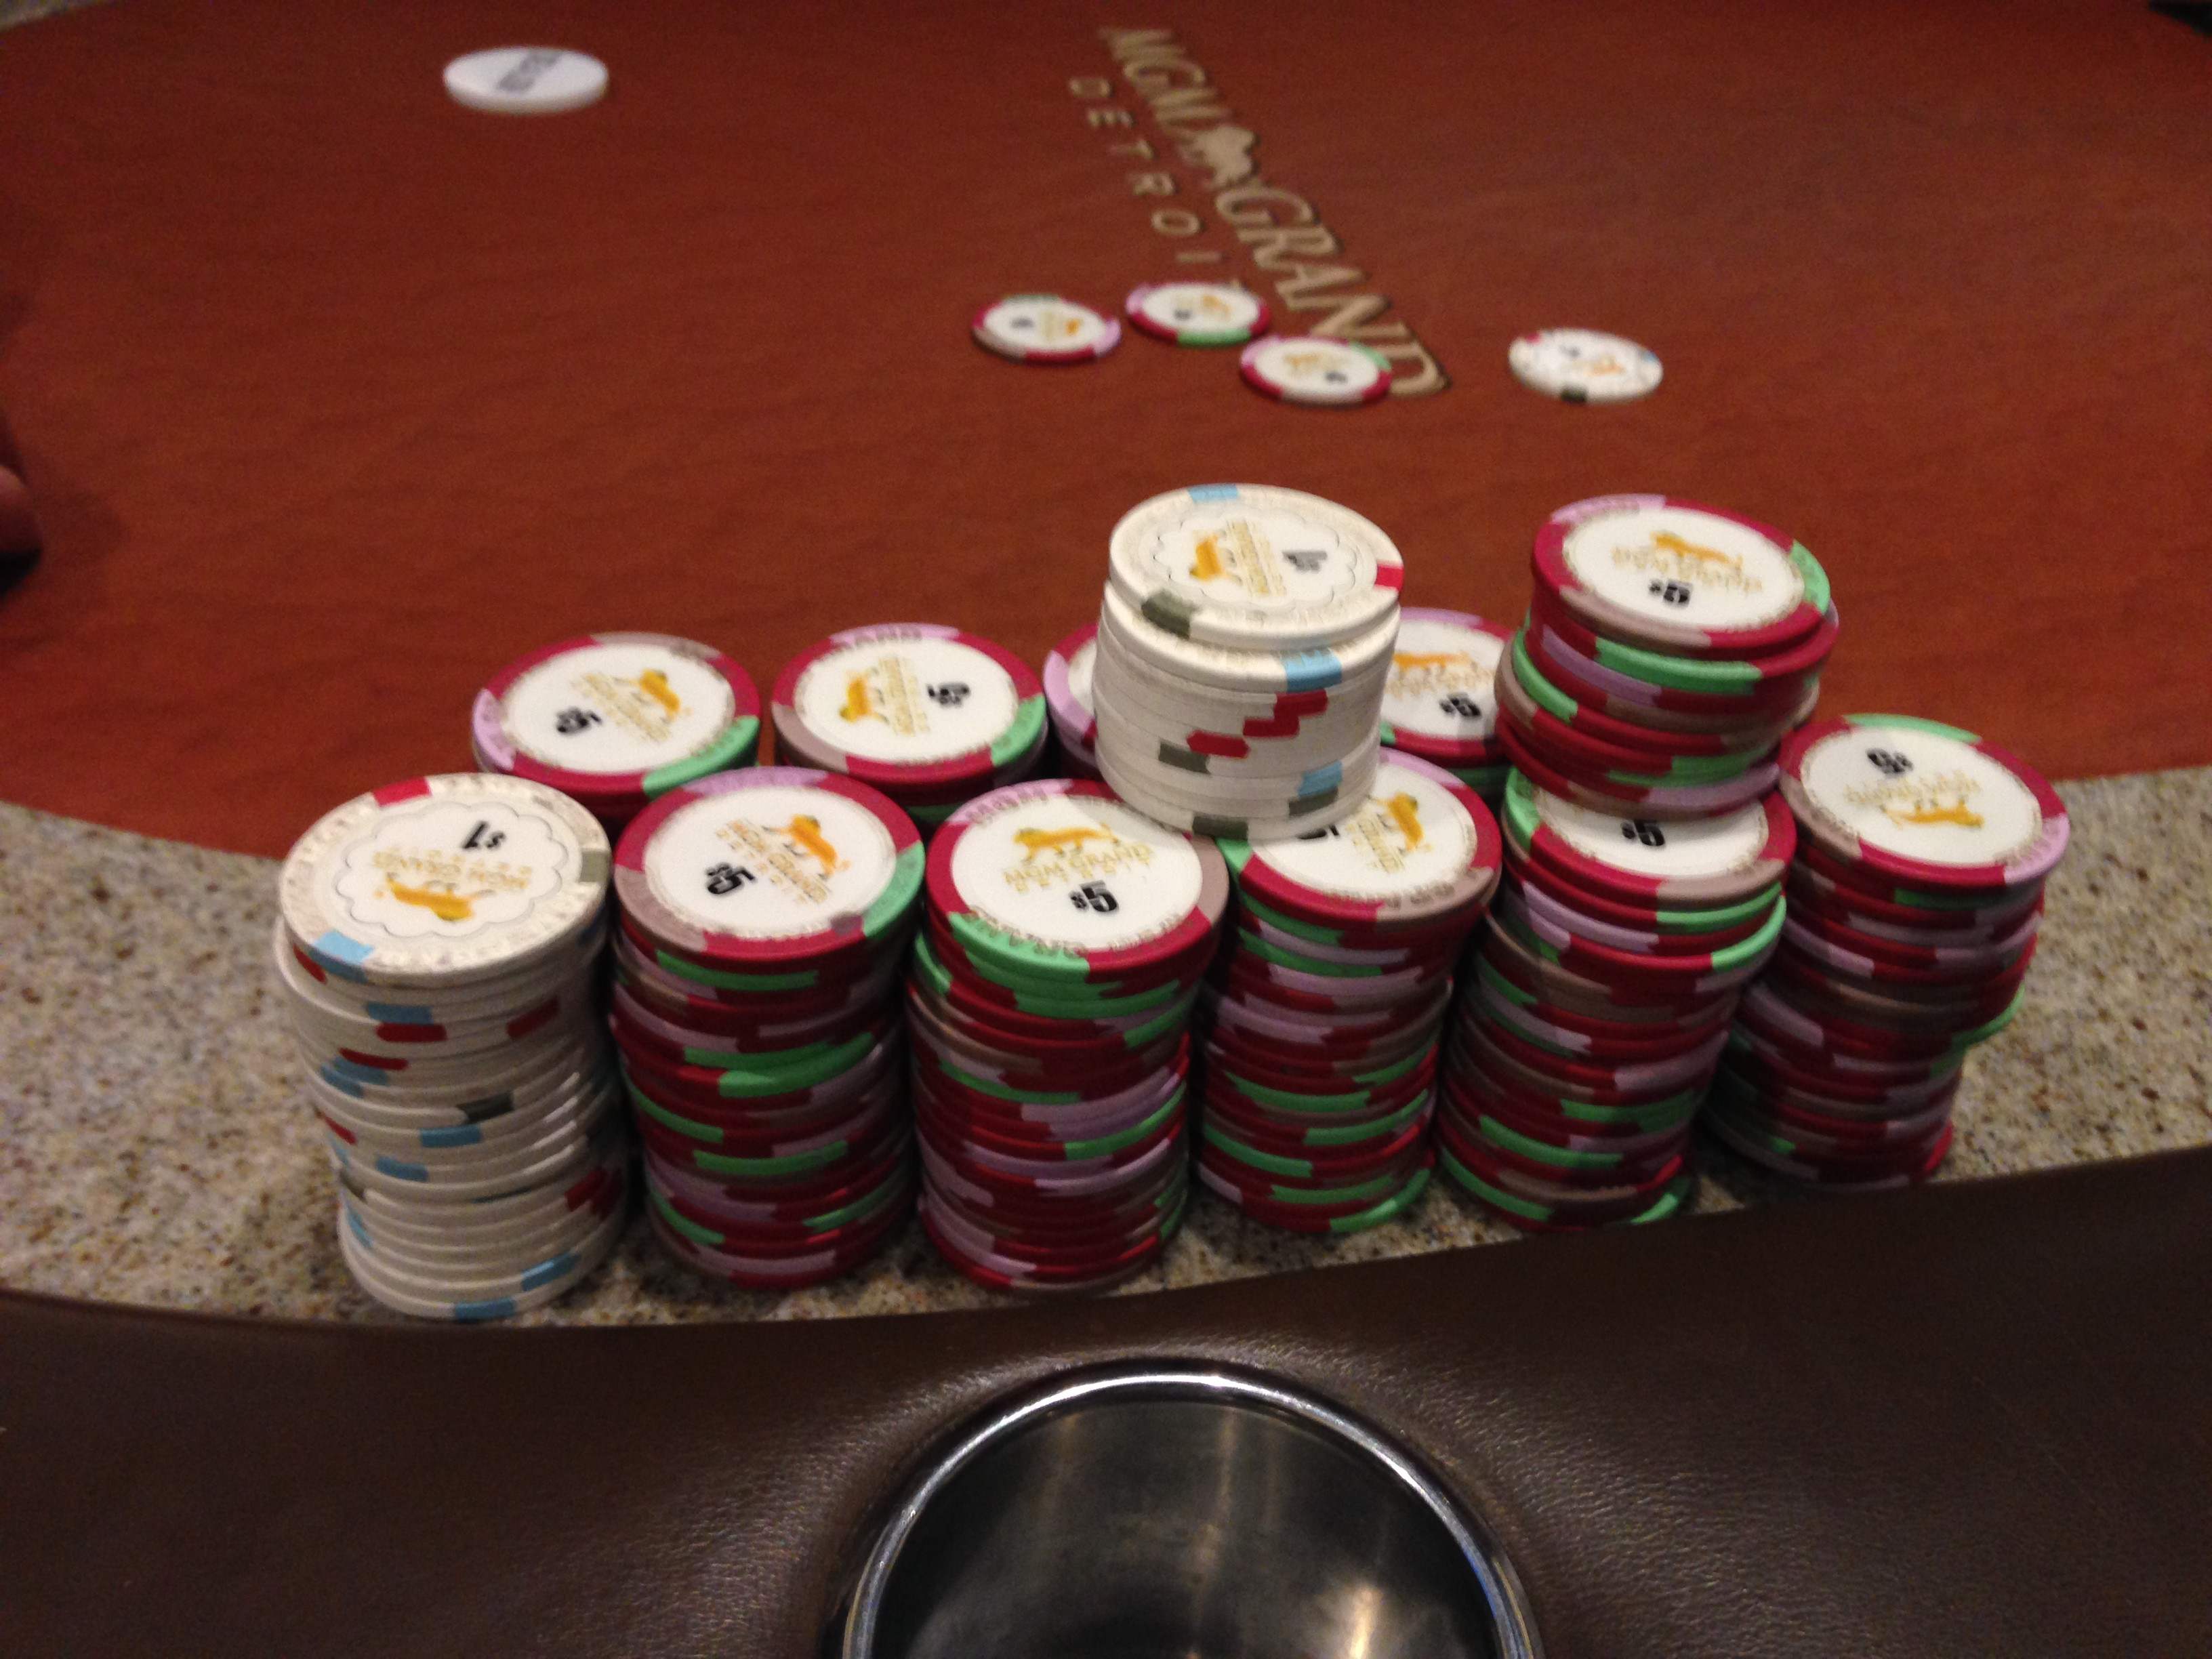 Show Us Your Live Stacks | Page 4 | Poker Chip Forum